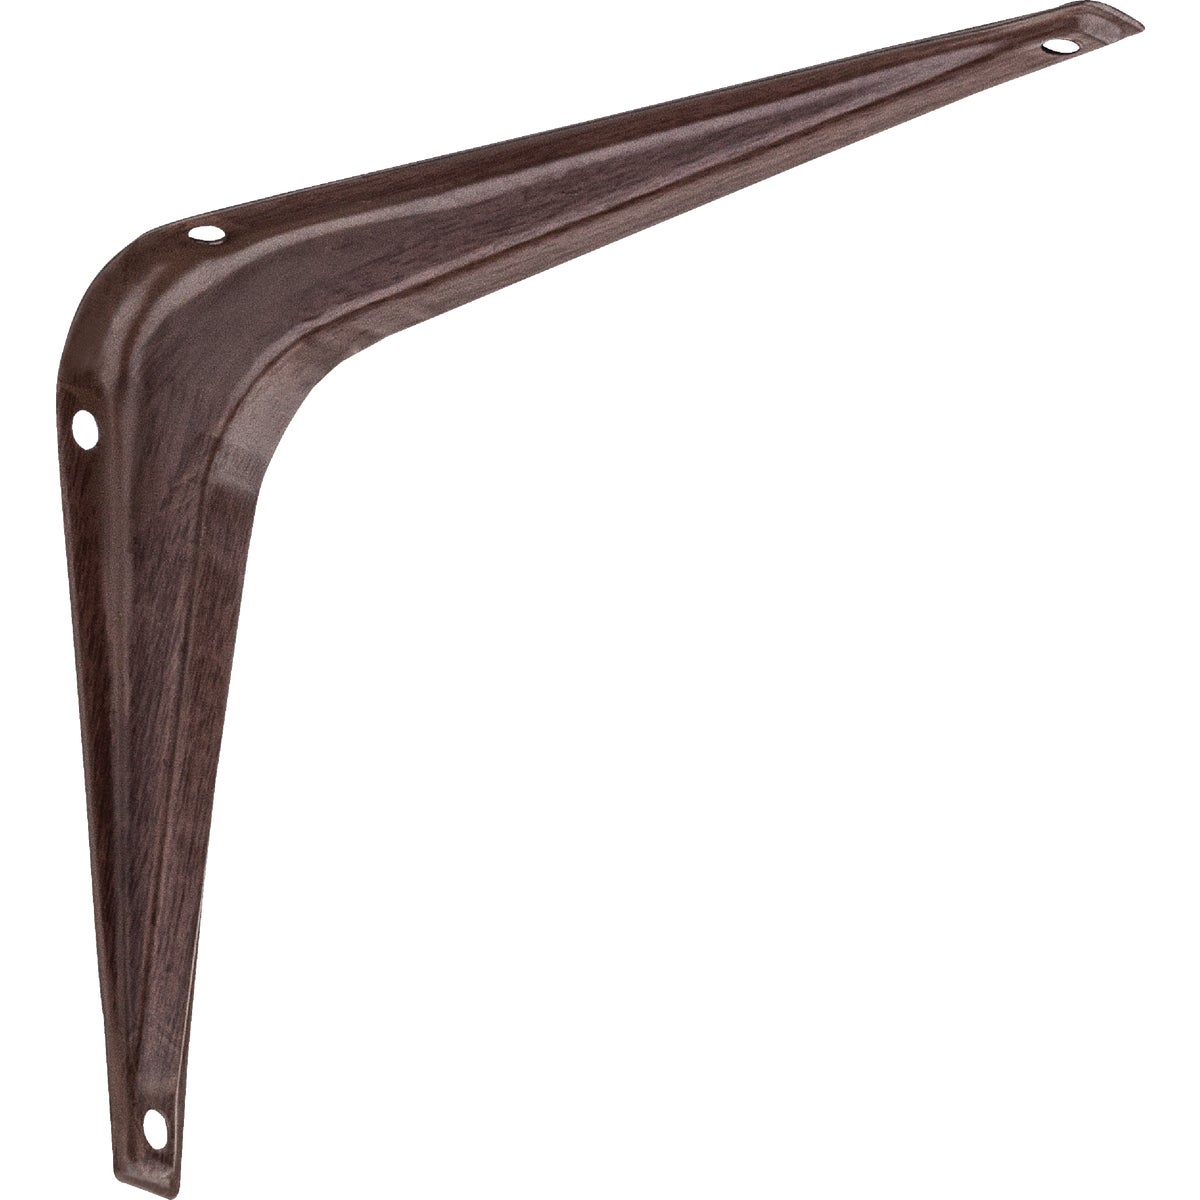 4X6 FW SHELF BRACKET - N185017 by National Mfg Co